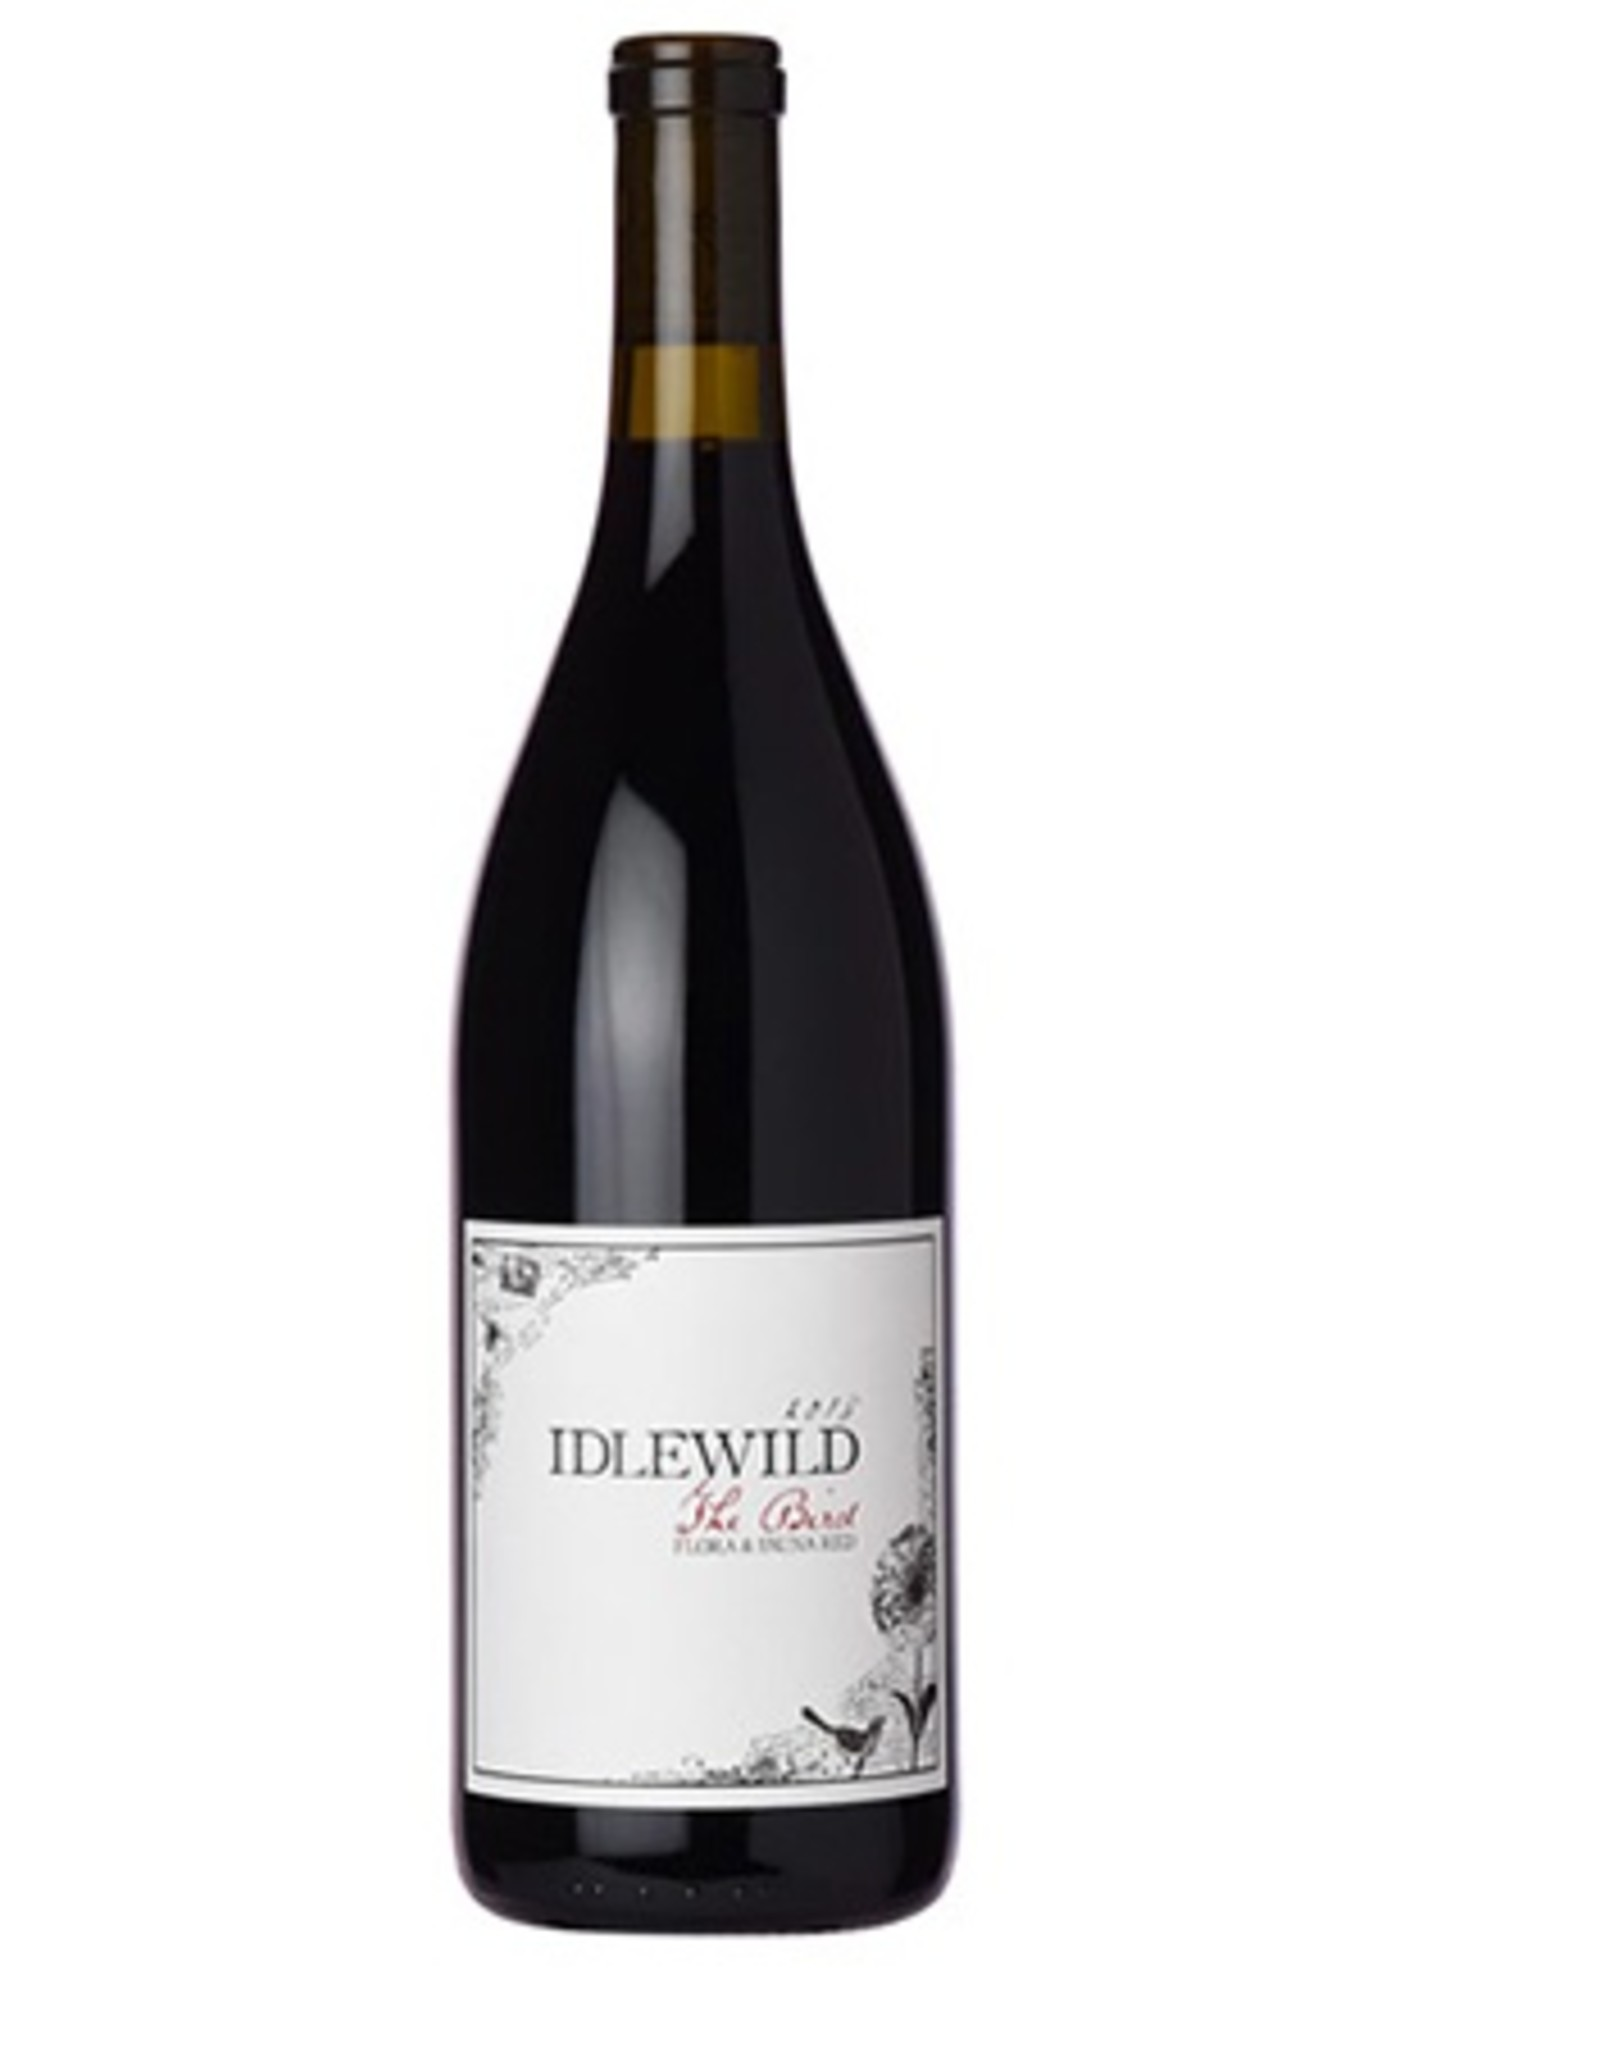 Idlewild Flora and Fauna Red Mendocino 2019